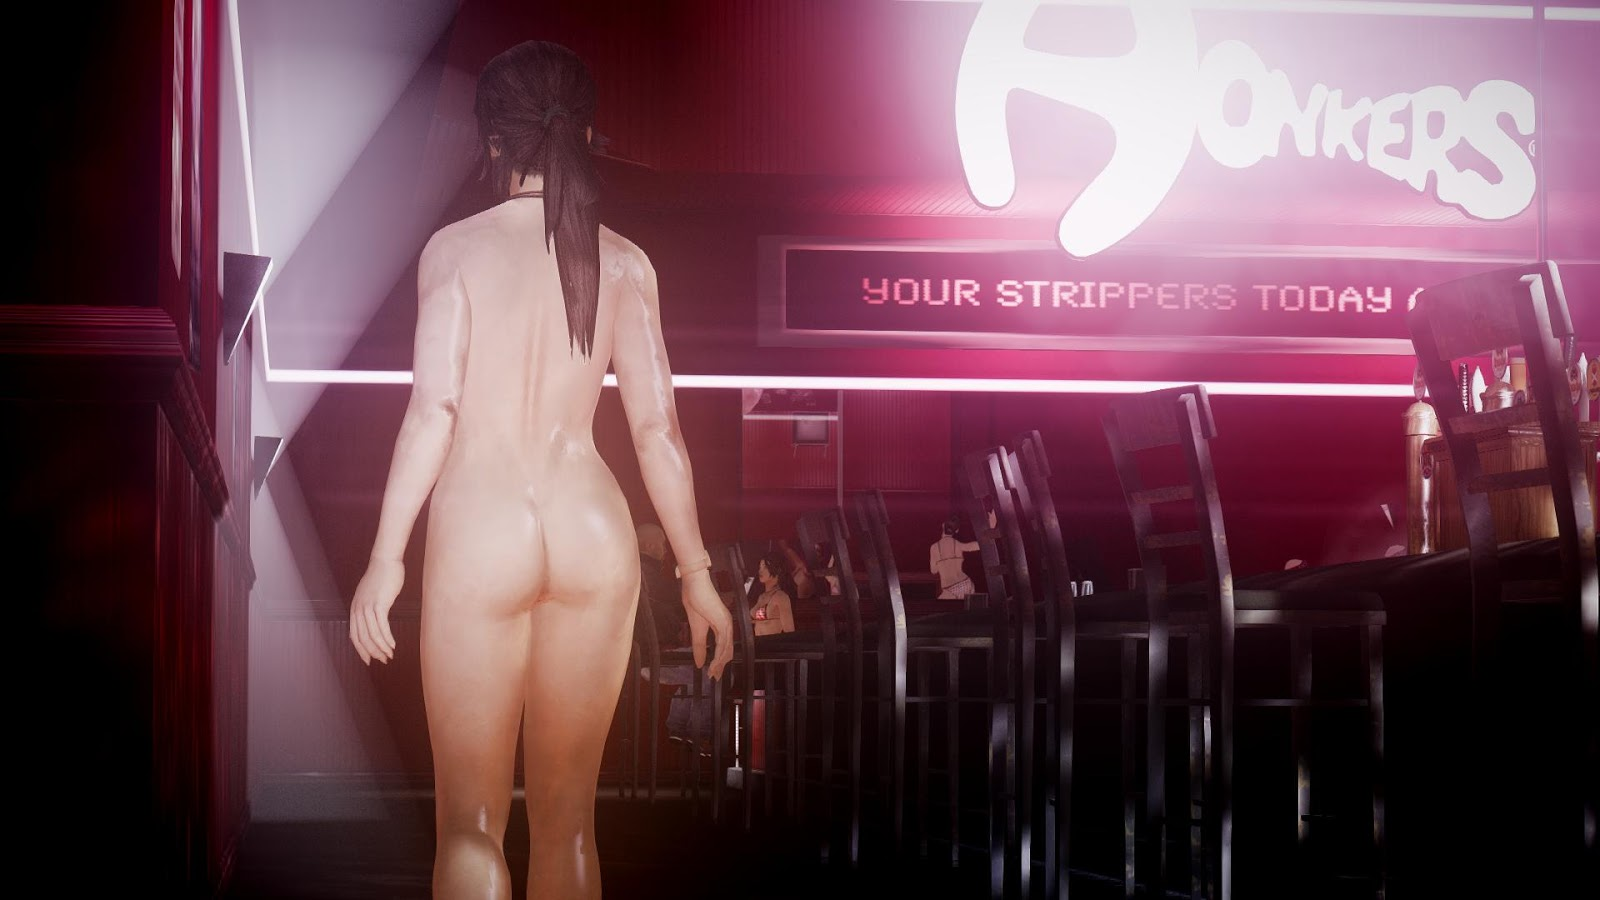 Gta stripper hentai anime tubes